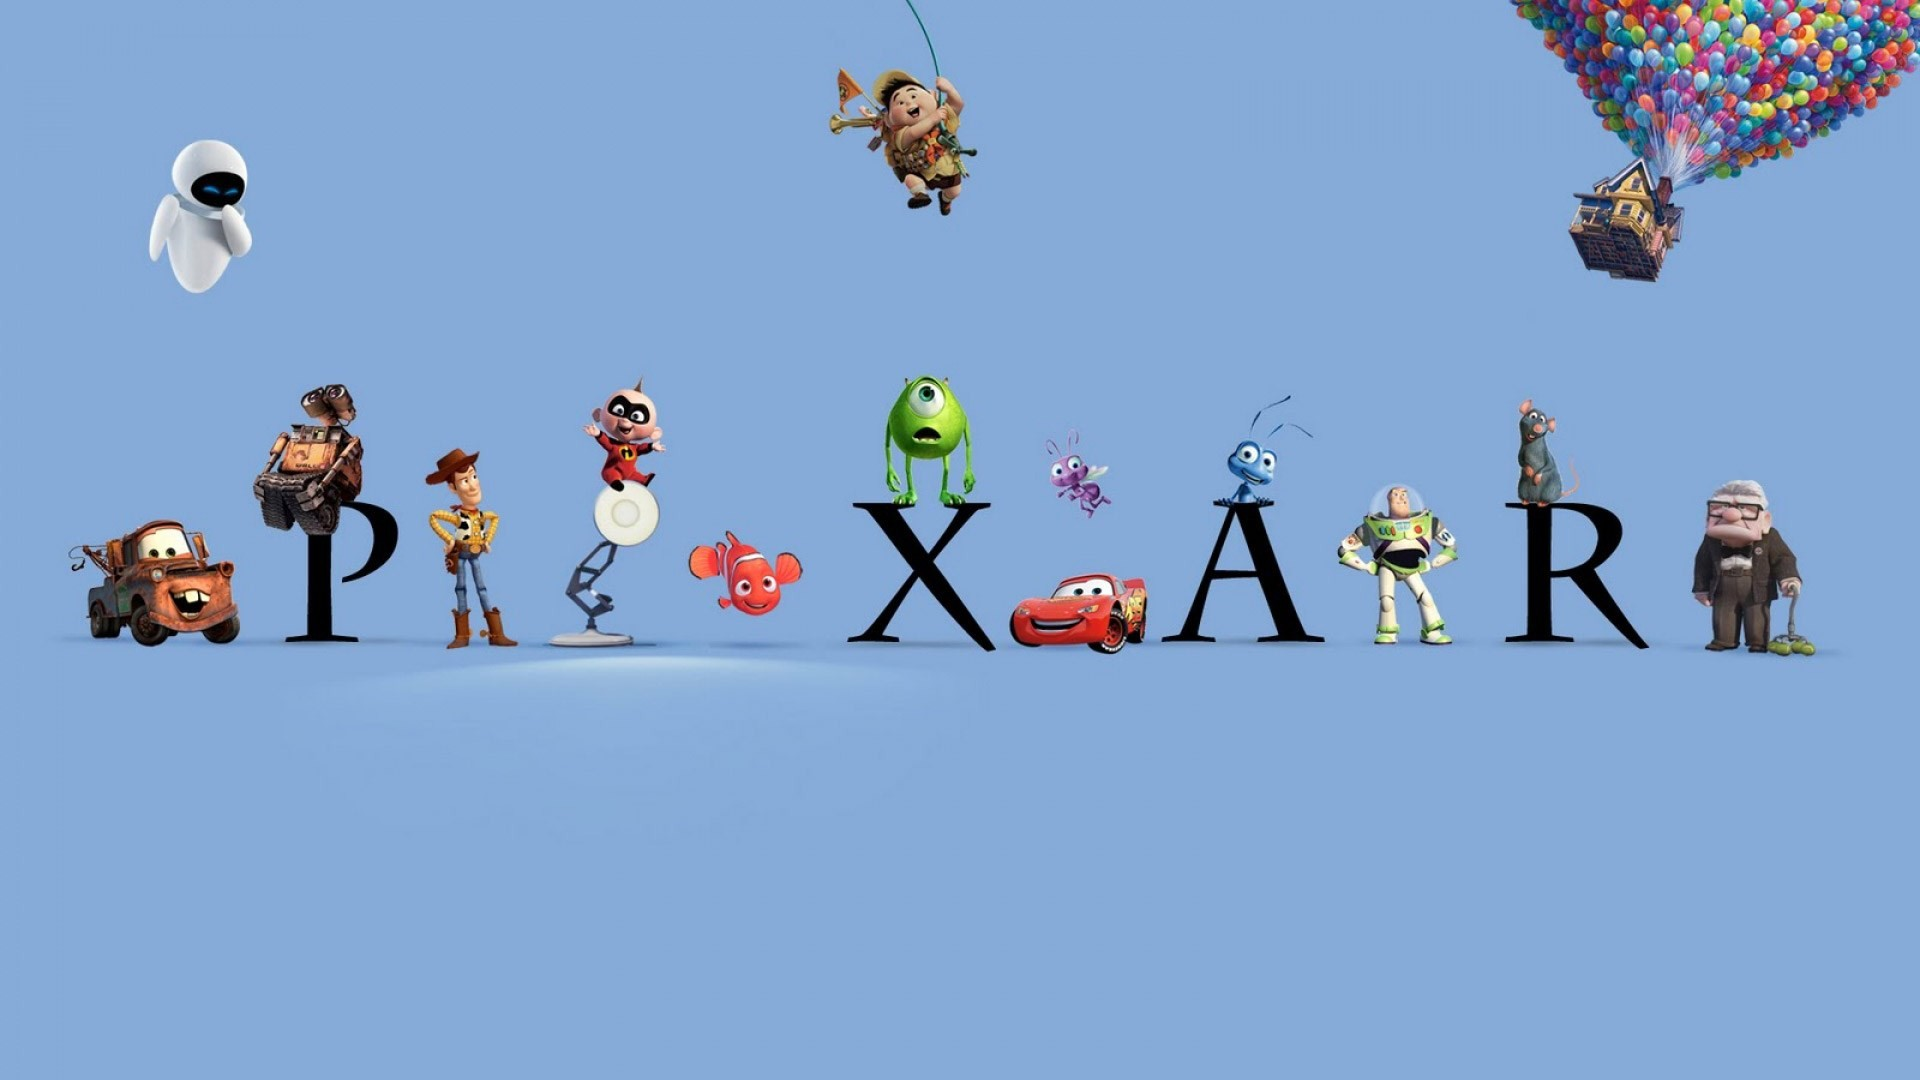 1920x1080 up pixar desktop wallpapers